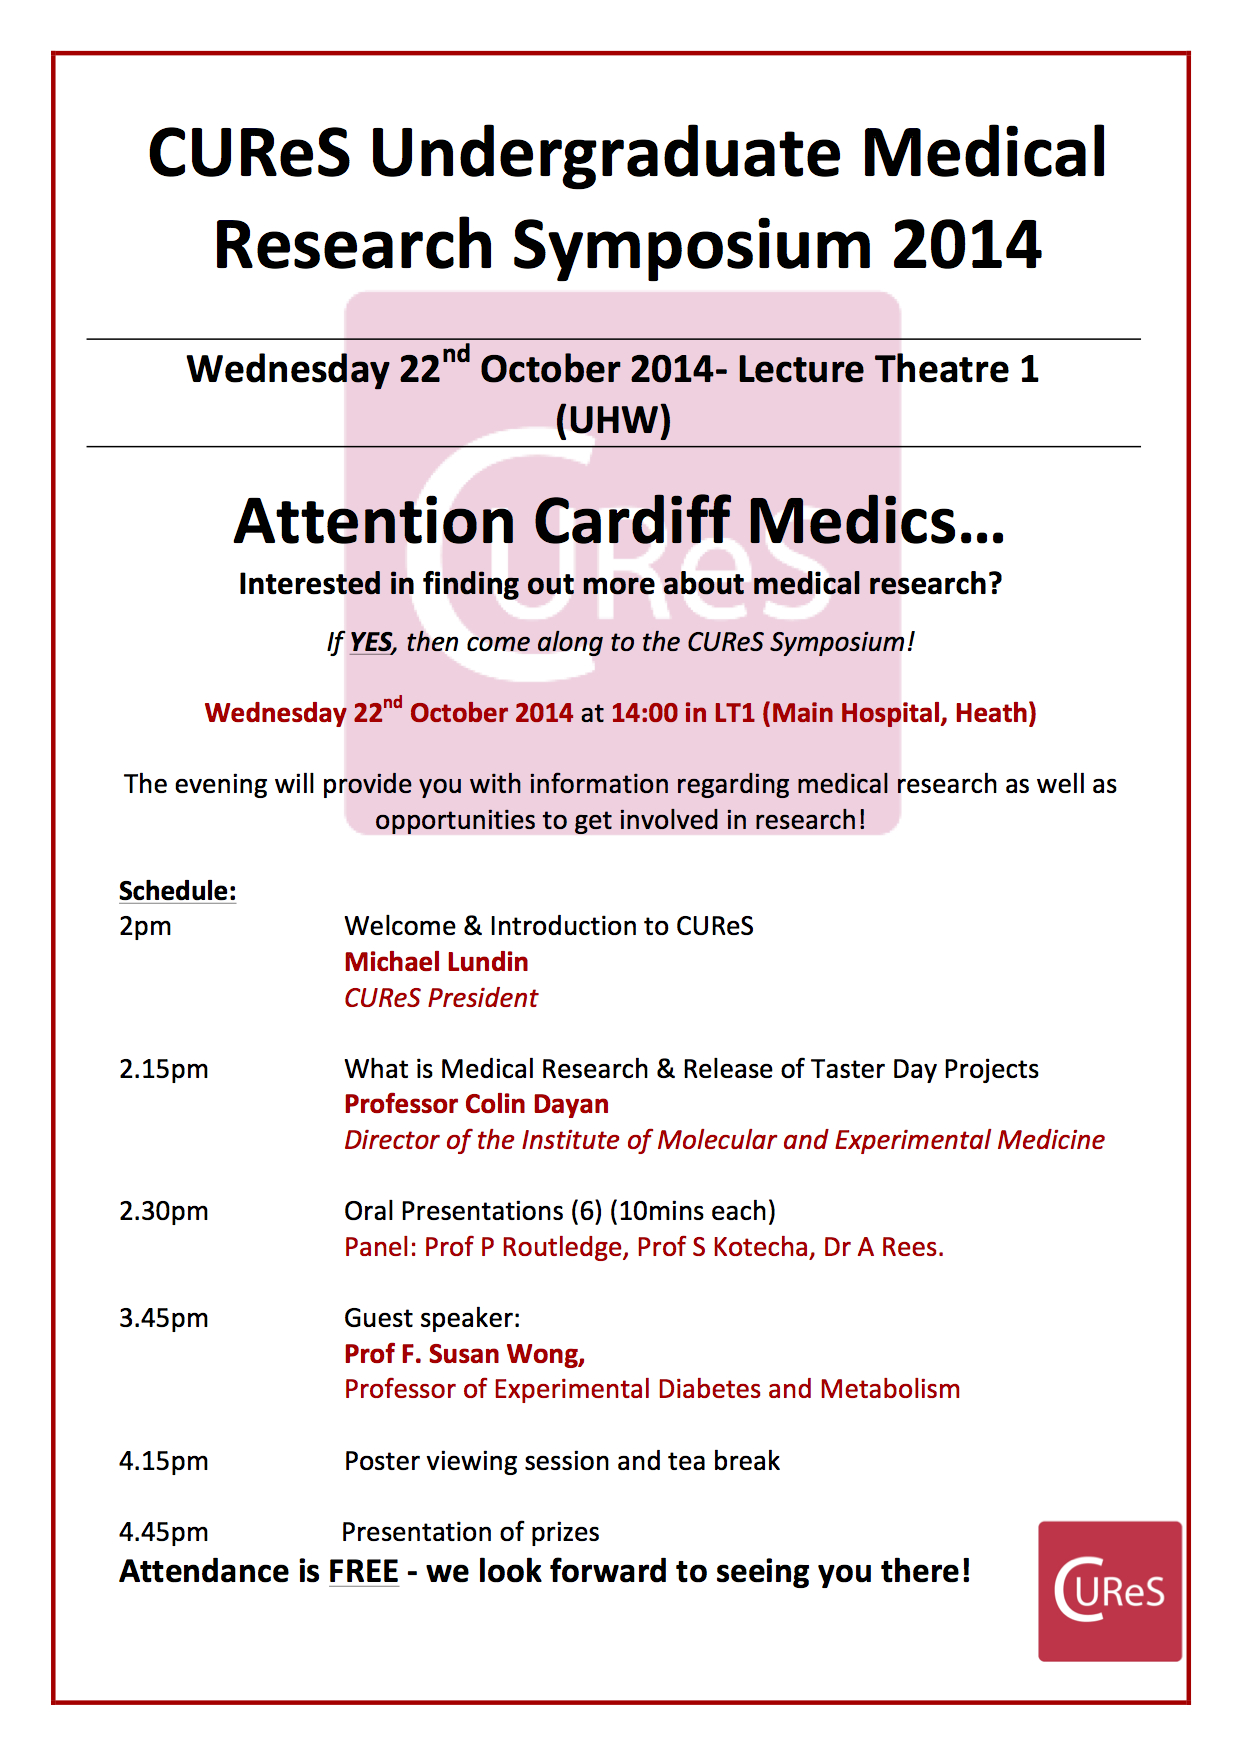 CUReS Undergraduate Research Symposium programme vs 2.0